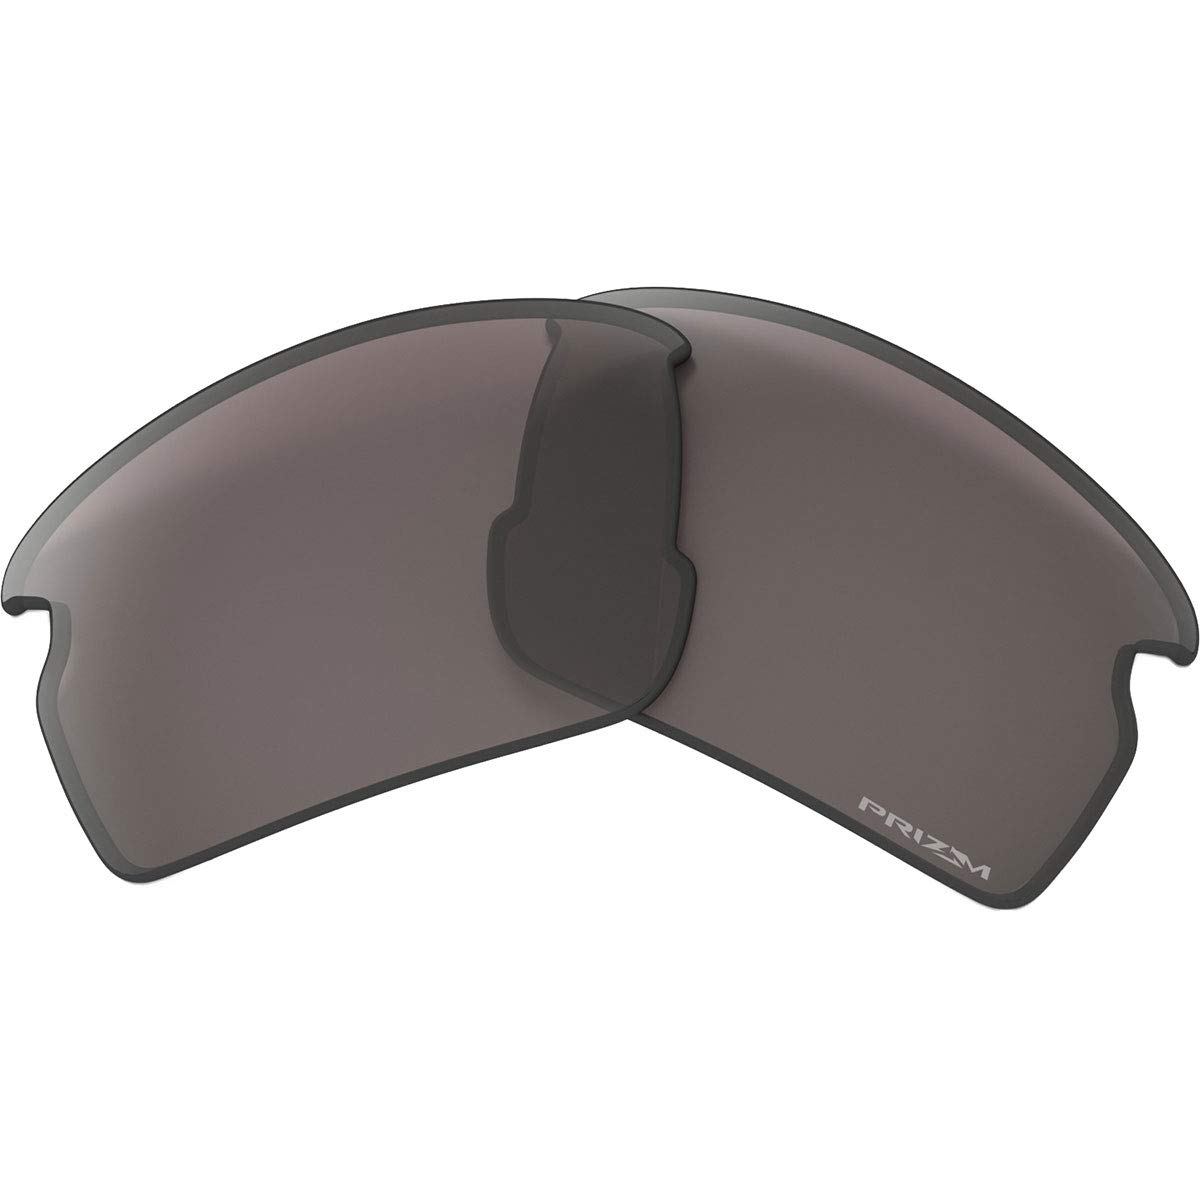 Oakley Flak 2.0 ALK Replacement Lens Sunglass Accessories,One Size,Prizm Grey Polarized by Oakley